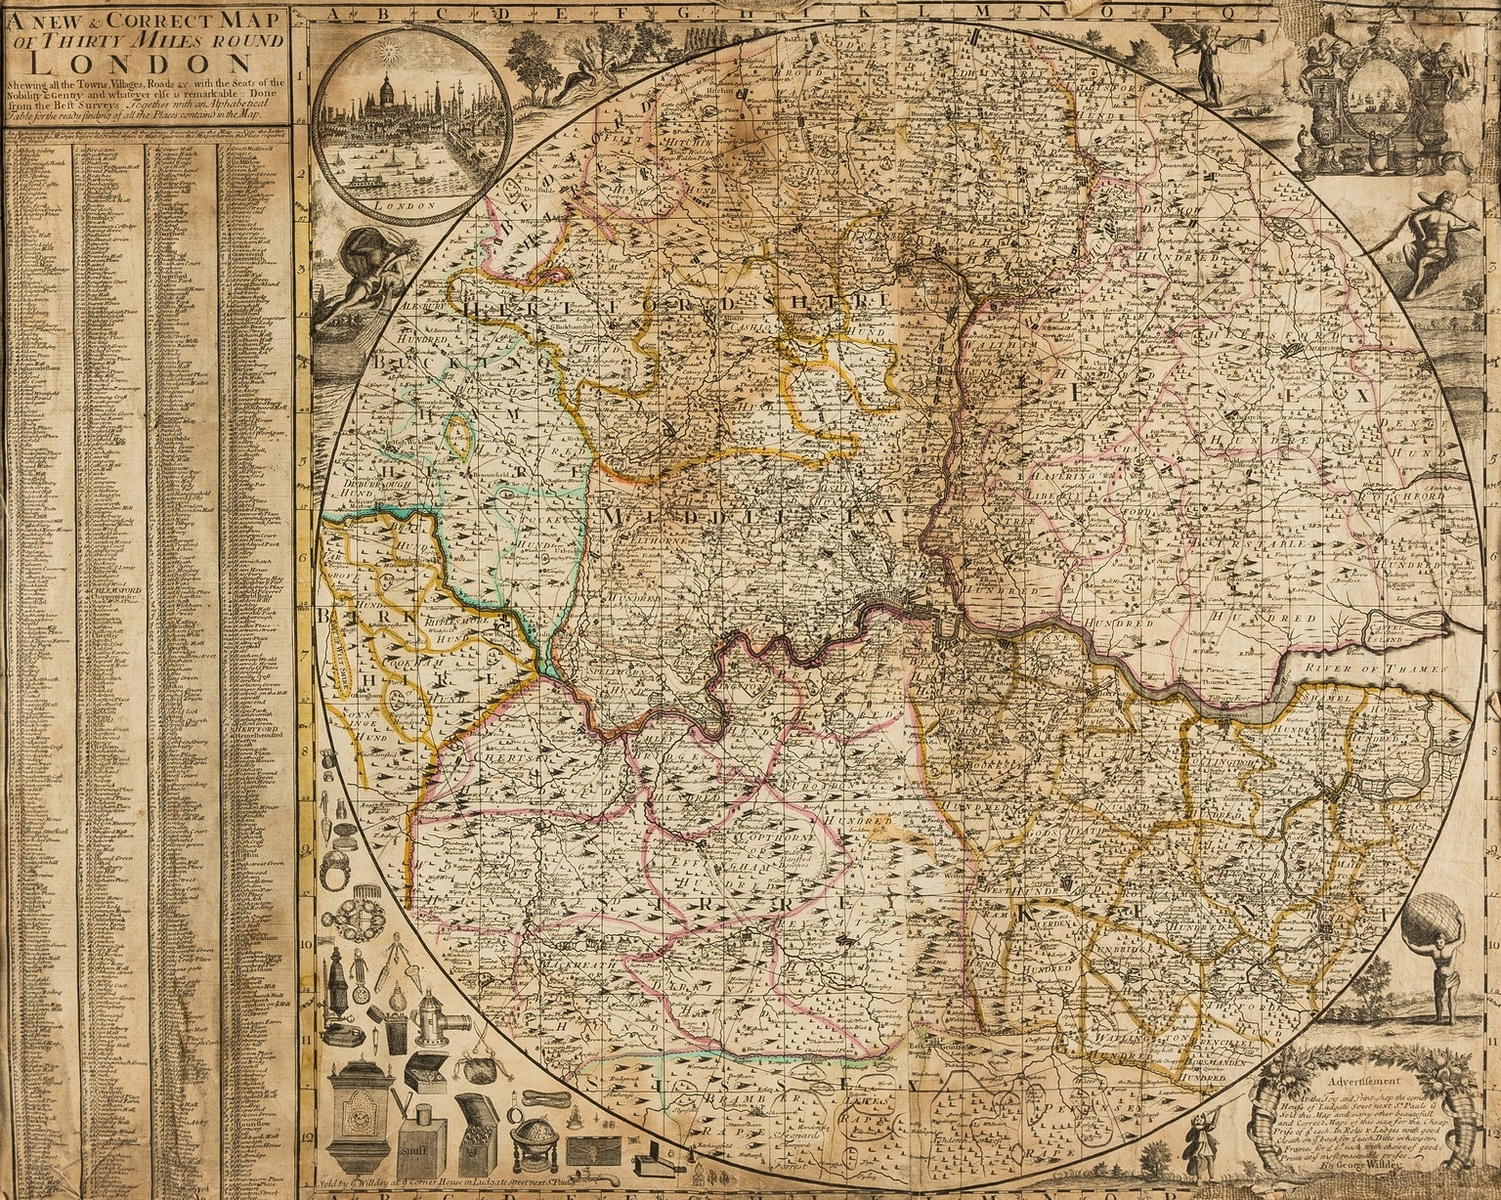 London.- Willdey (George) A New & Correct Map of Thirty Miles Round London, [c. 1720].